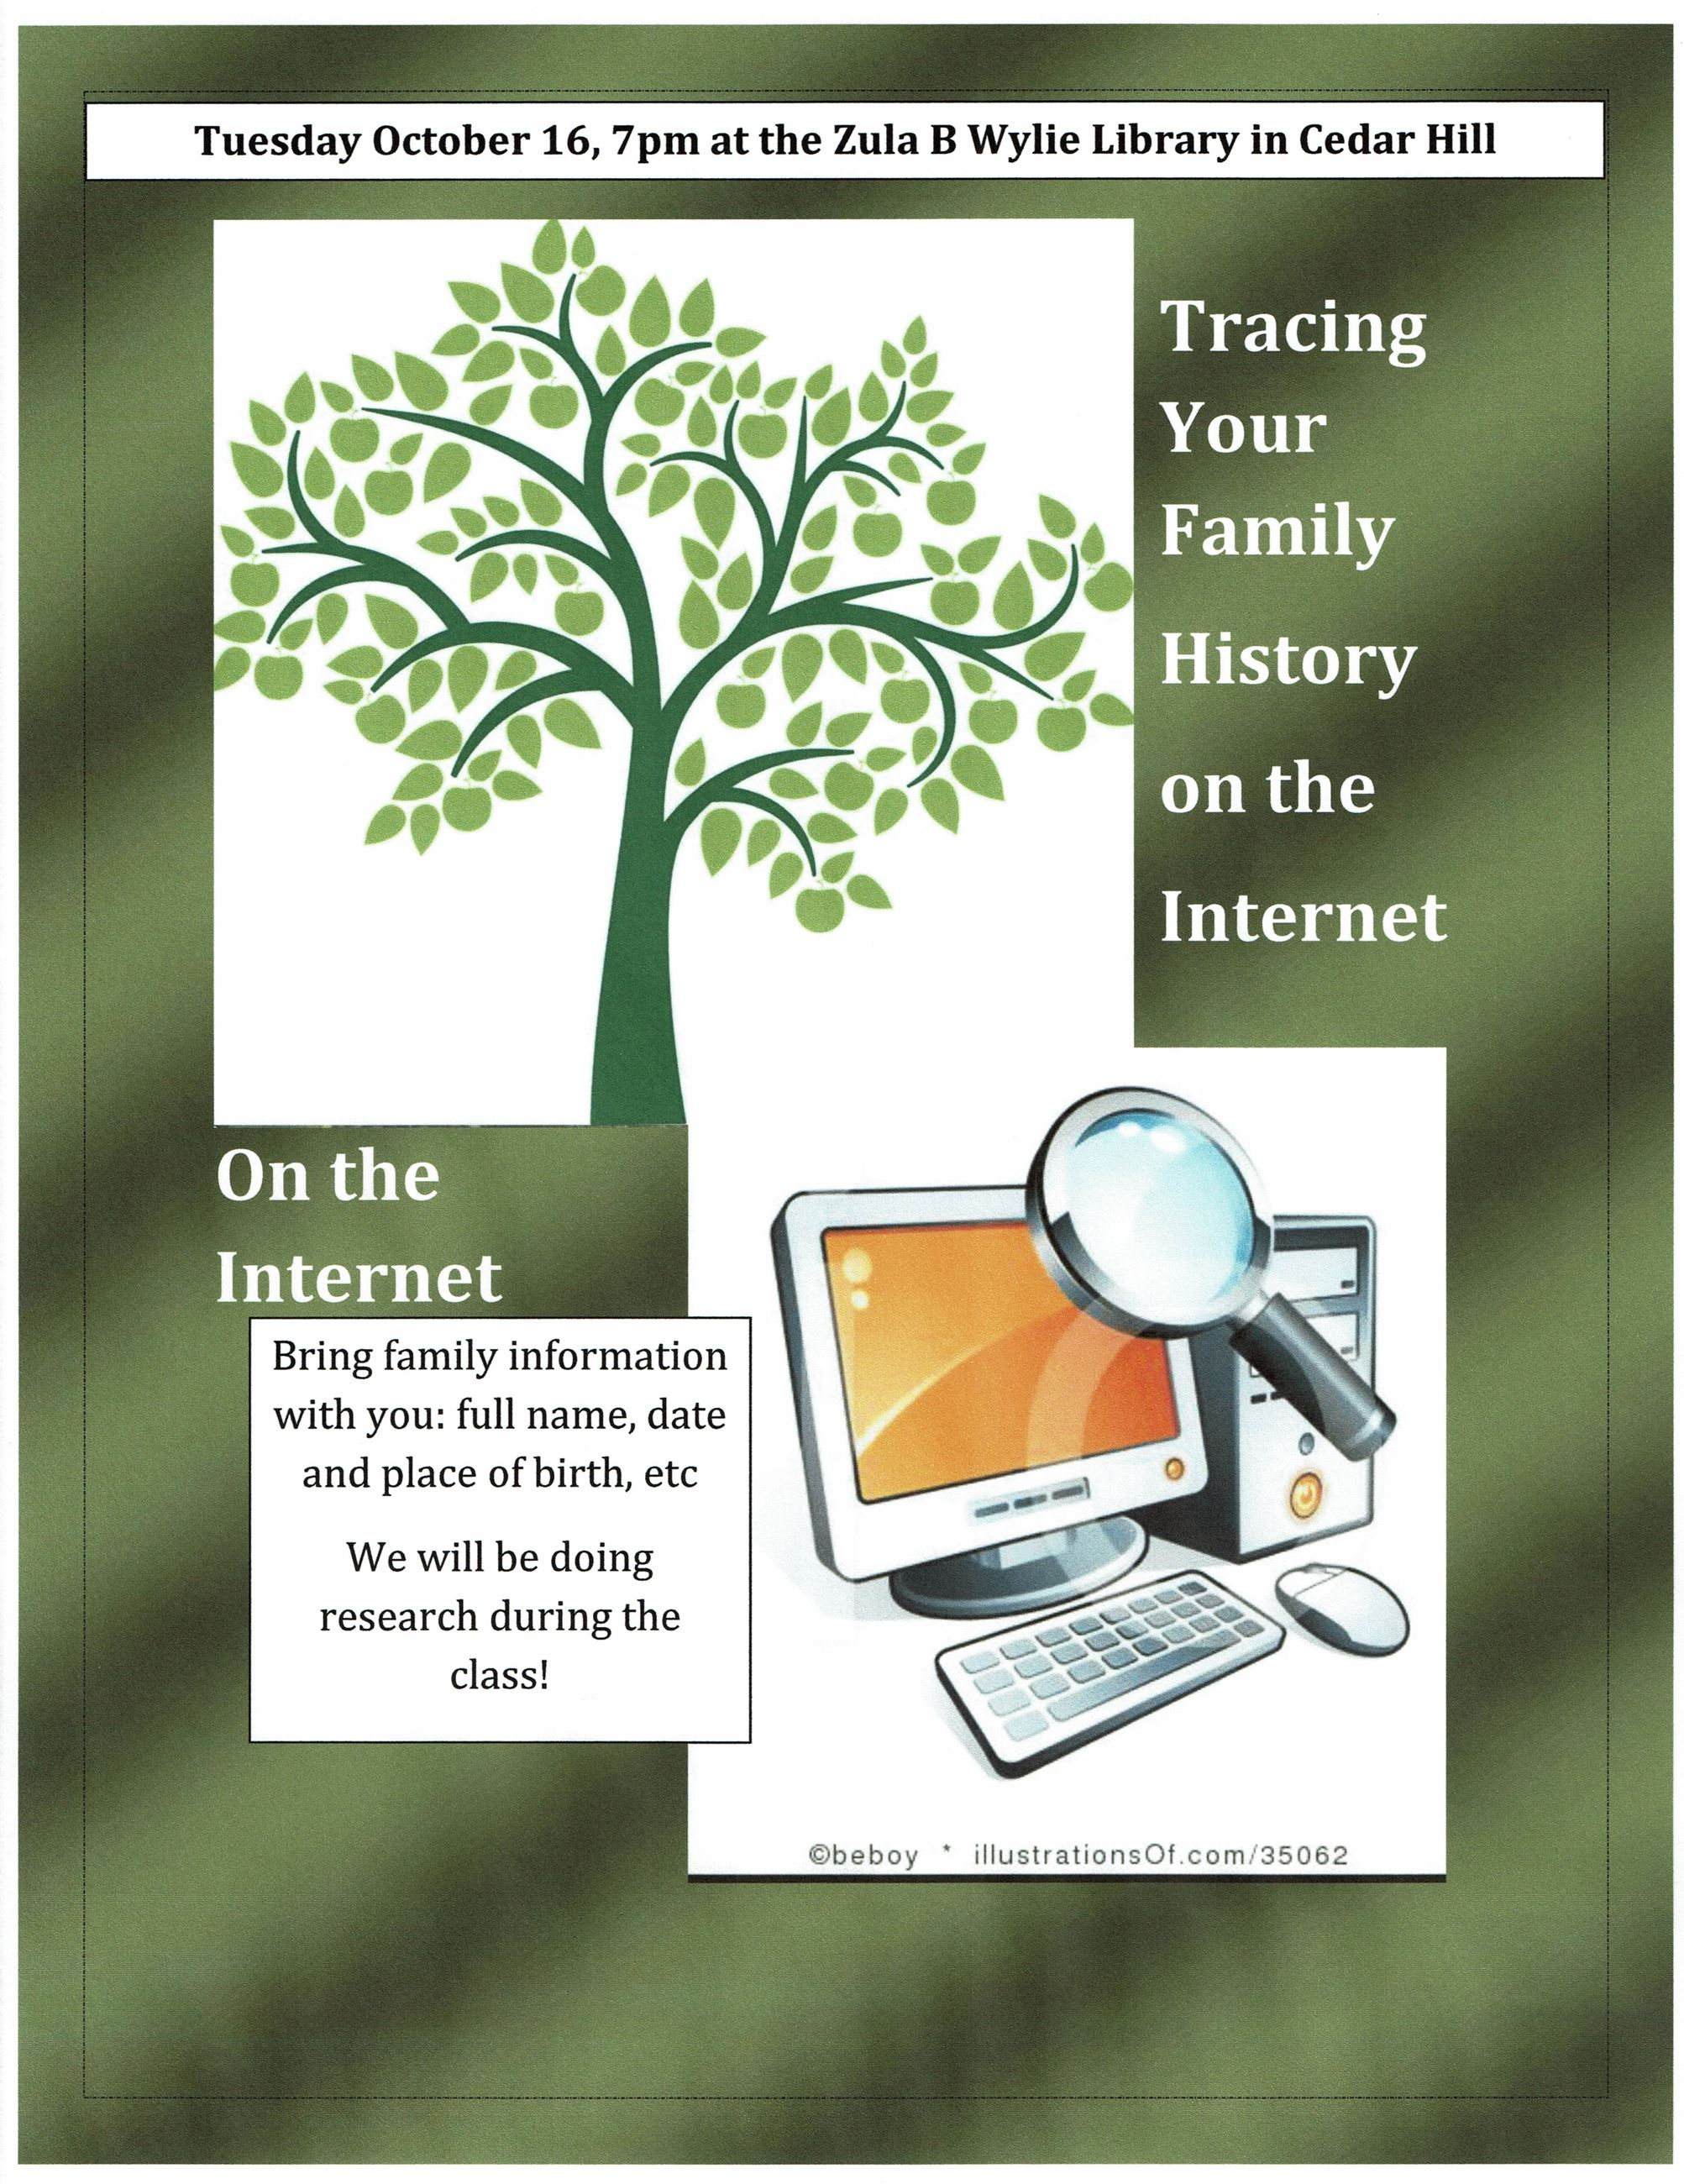 Tracing Your Family History on the  Internet October 2018 poster jpg_000010